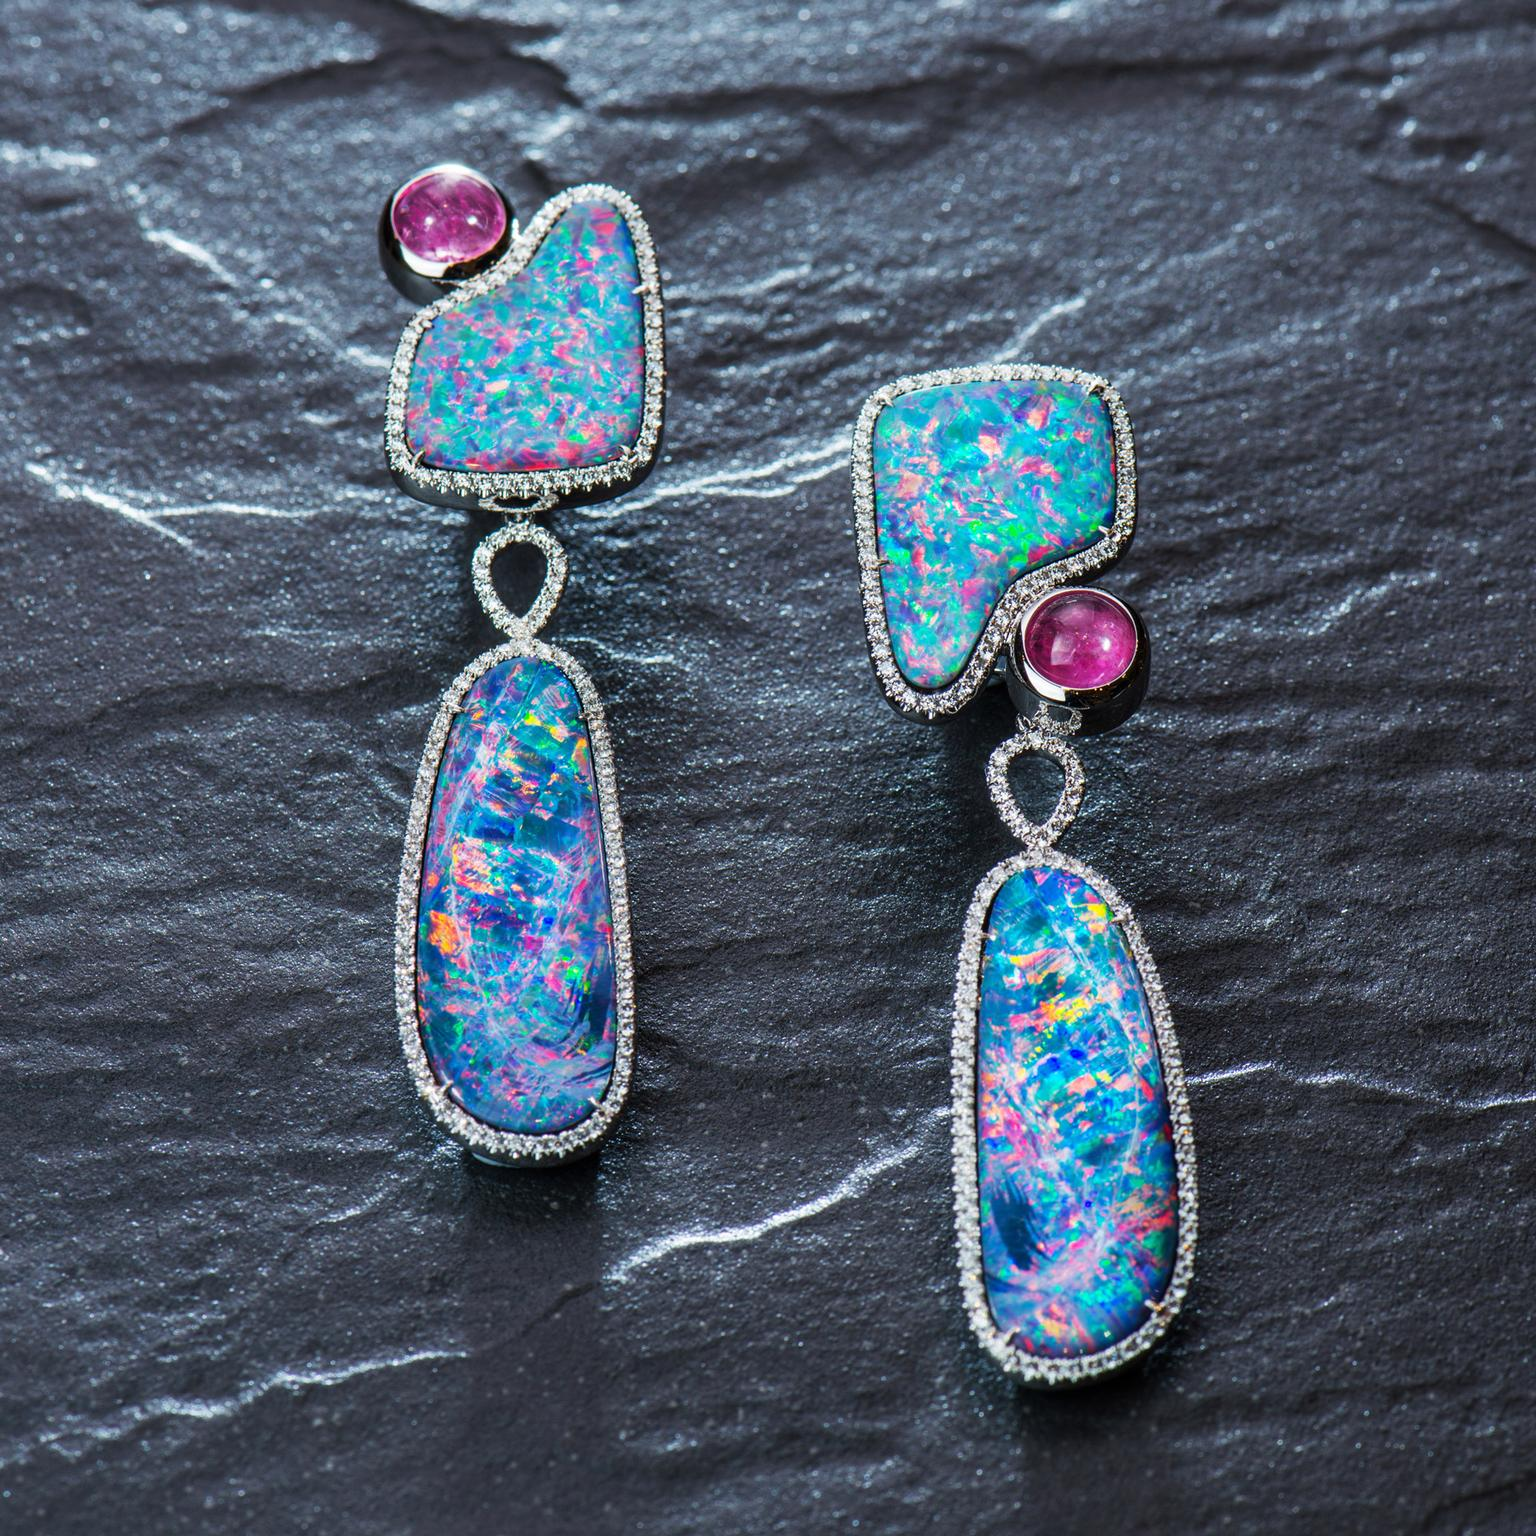 Tayma Bushfire opal earrings with diamonds and rubellites